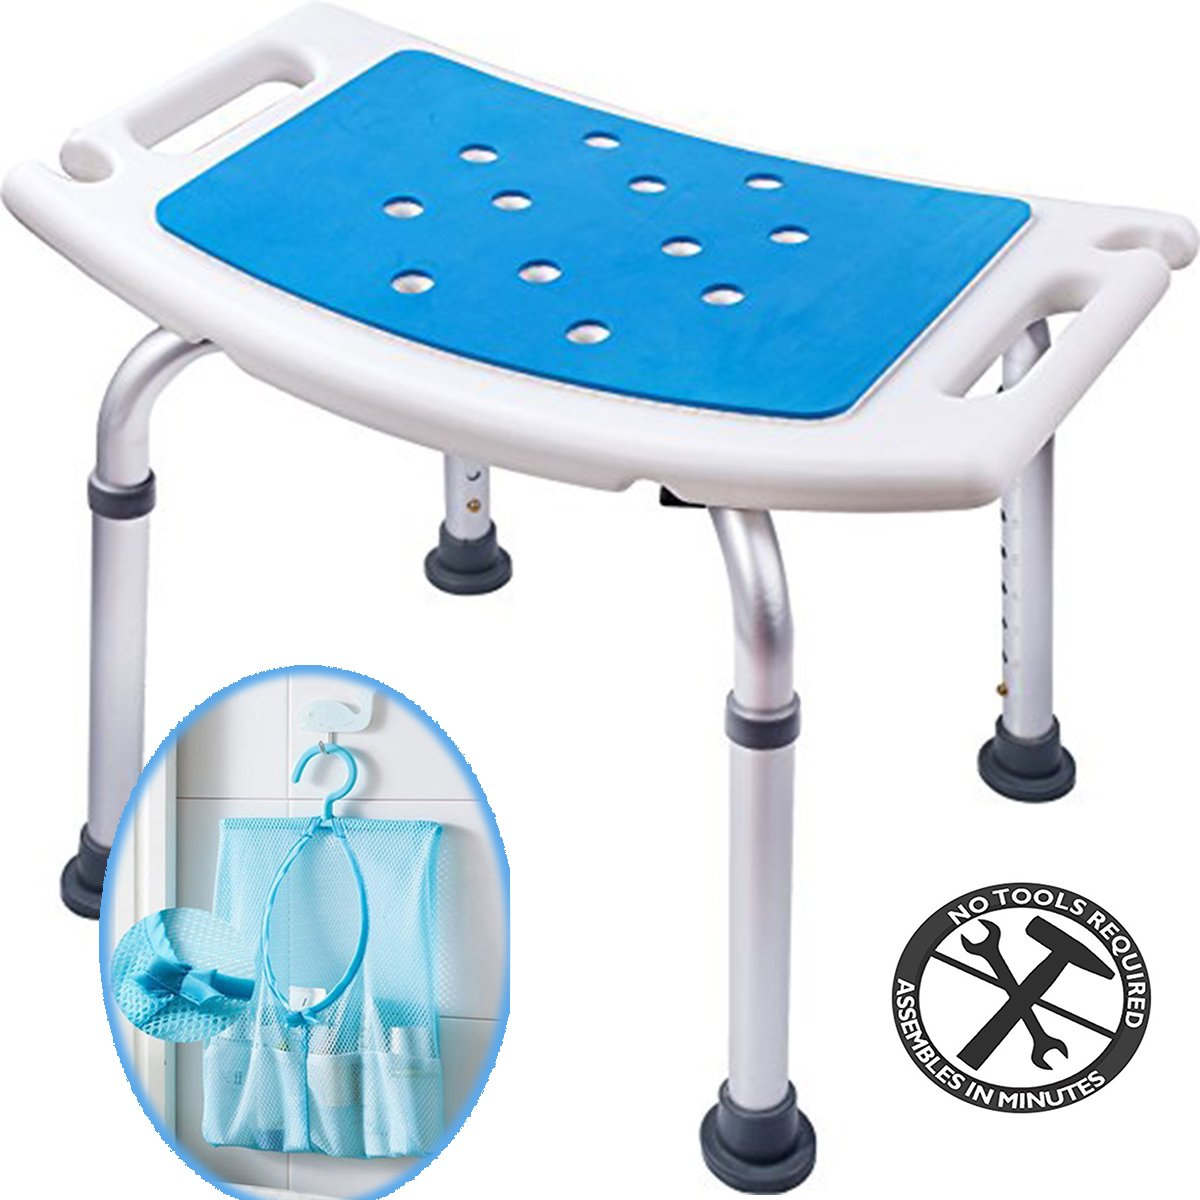 Medokare Shower Stool with Padded Seat - Shower Seat for Seniors with Tote Bag and Handles, Shower Bench Bath Chair for Elderly, Handicap Tub Shower Seats for Adults (White Stool) by Medokare